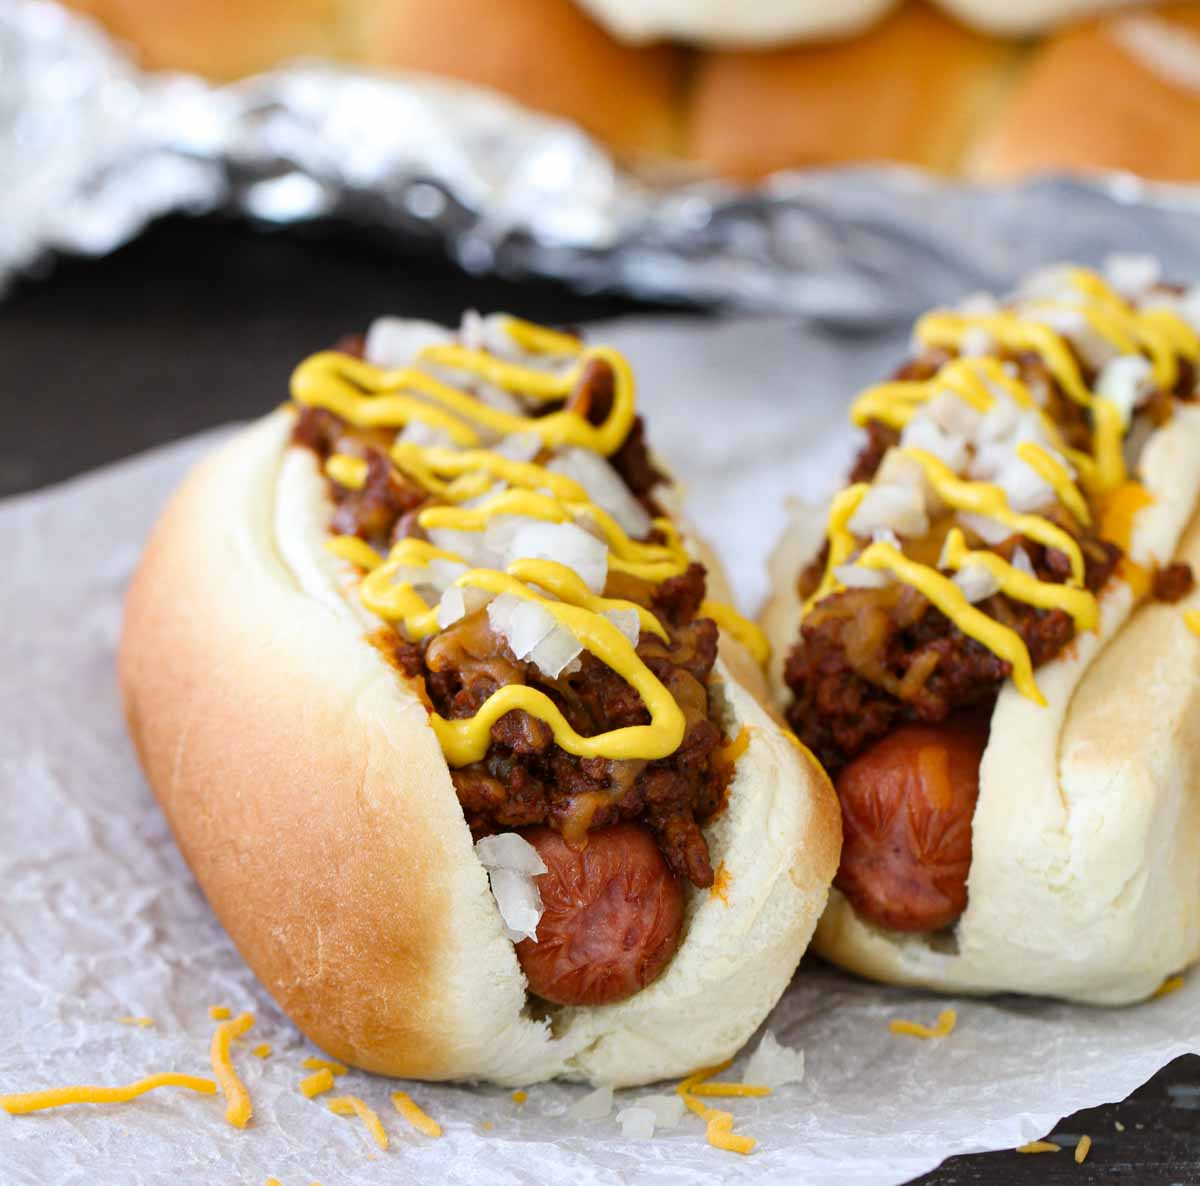 2 Coney Island Hot Dogs topped with mustard, cheese and onions